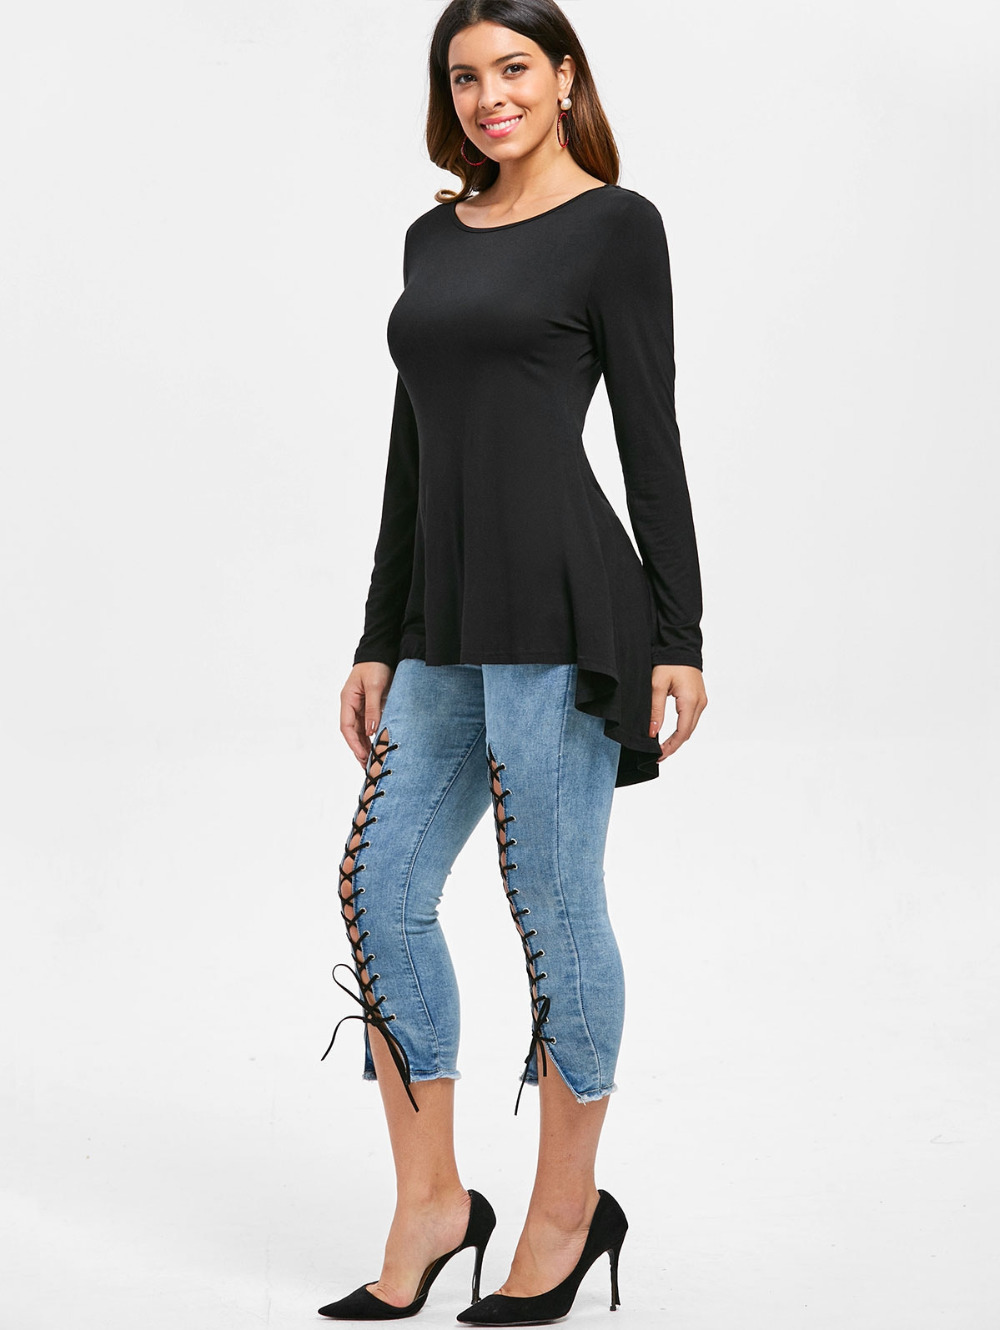 Black O-neck Cut Out Stud Embellished High Low T-shirt Women Long-sleeve Tops Fashion Ladies Loose T Shirt Basic Clothes